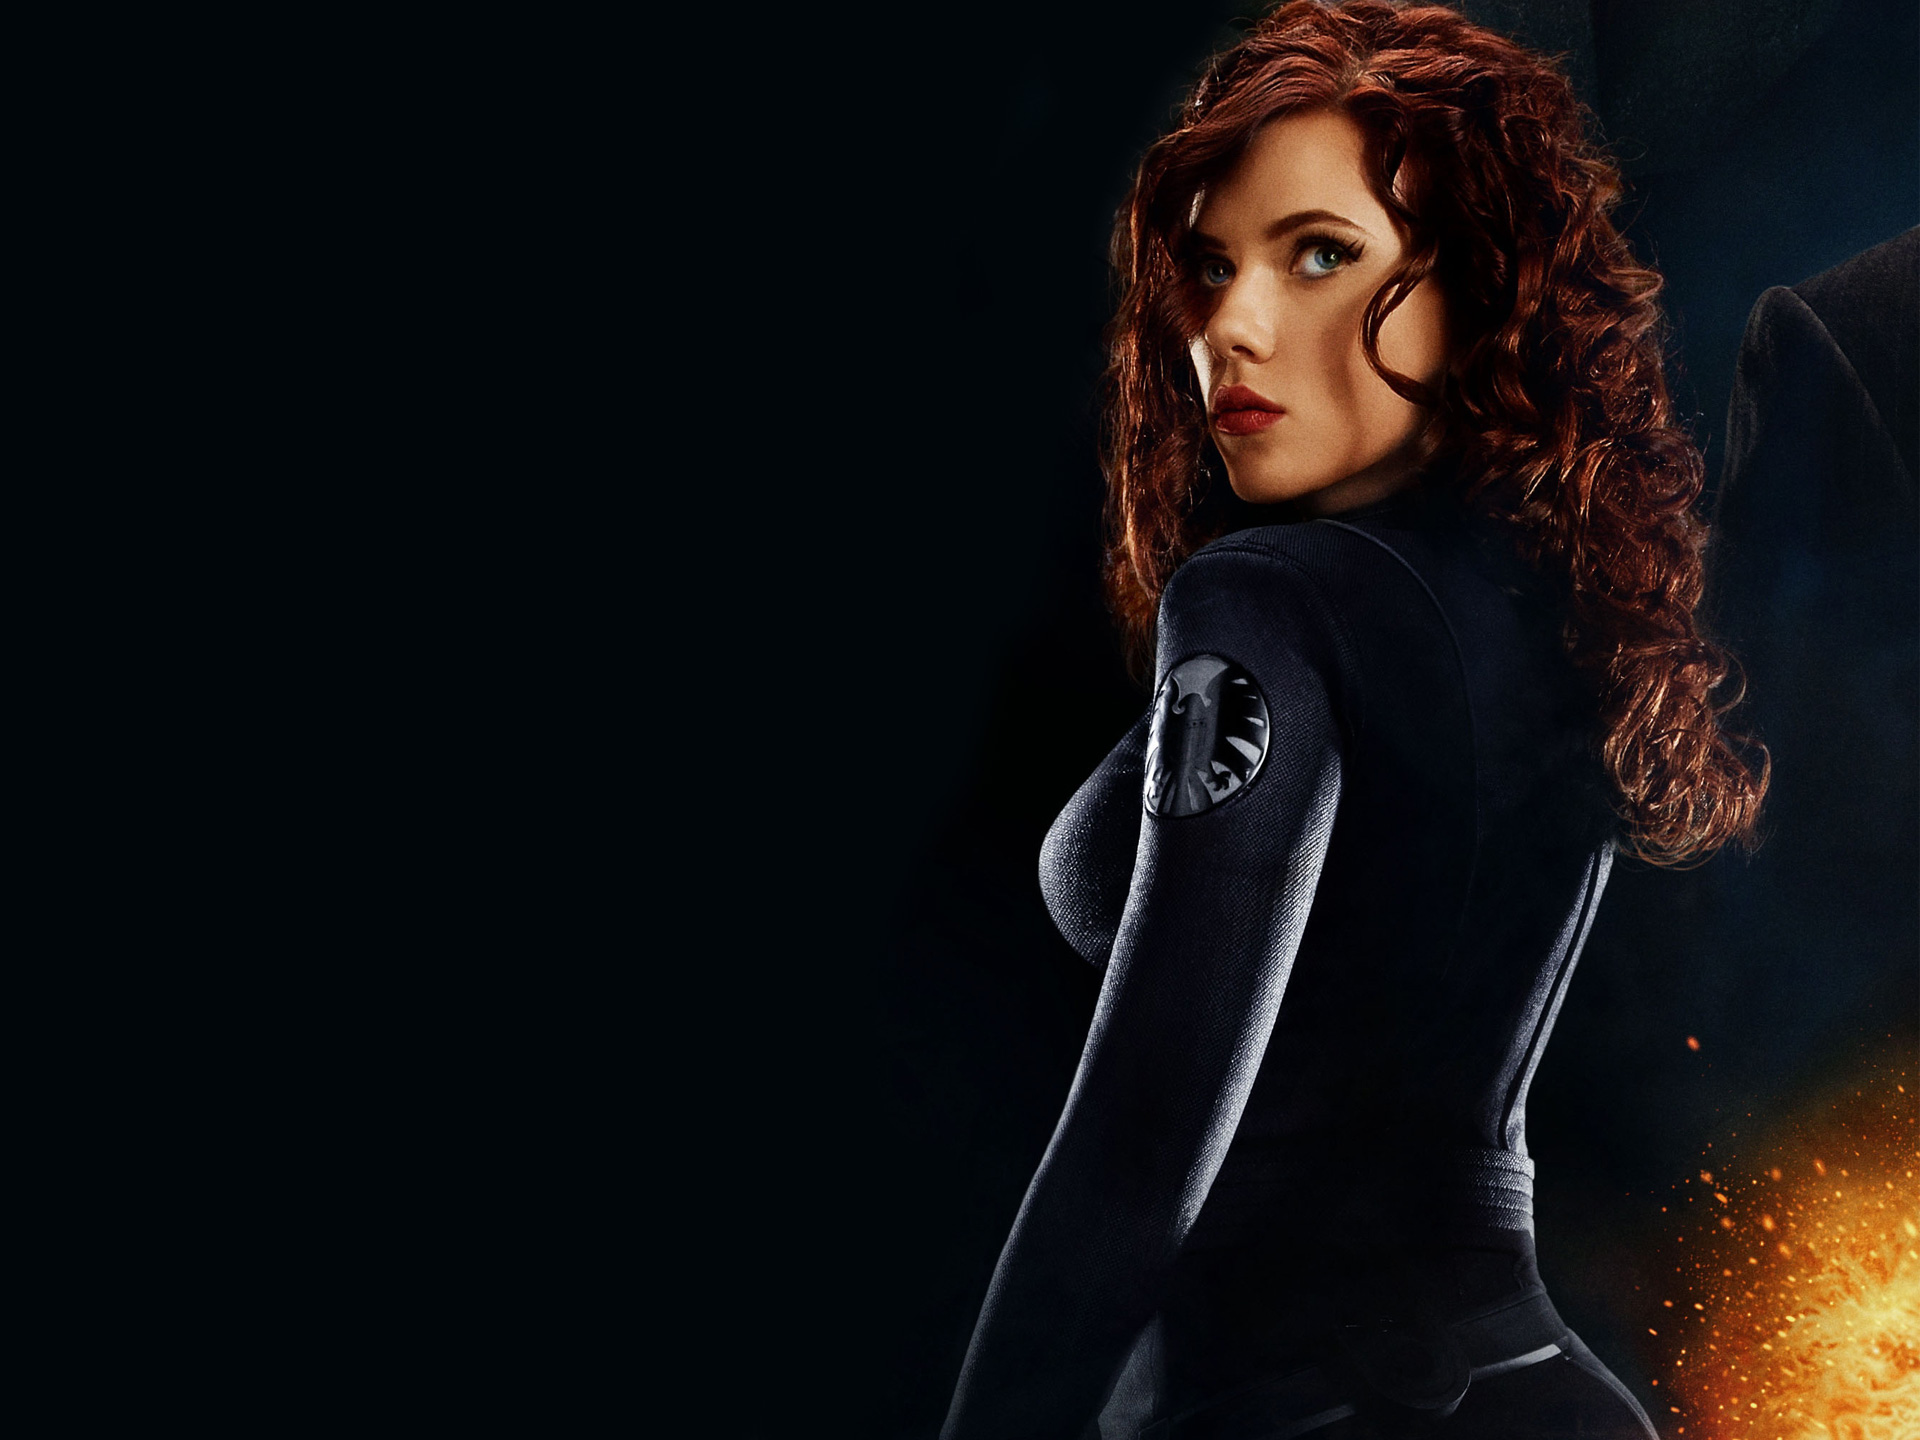 Scarlett johansson black widow wallpaper - photo#5